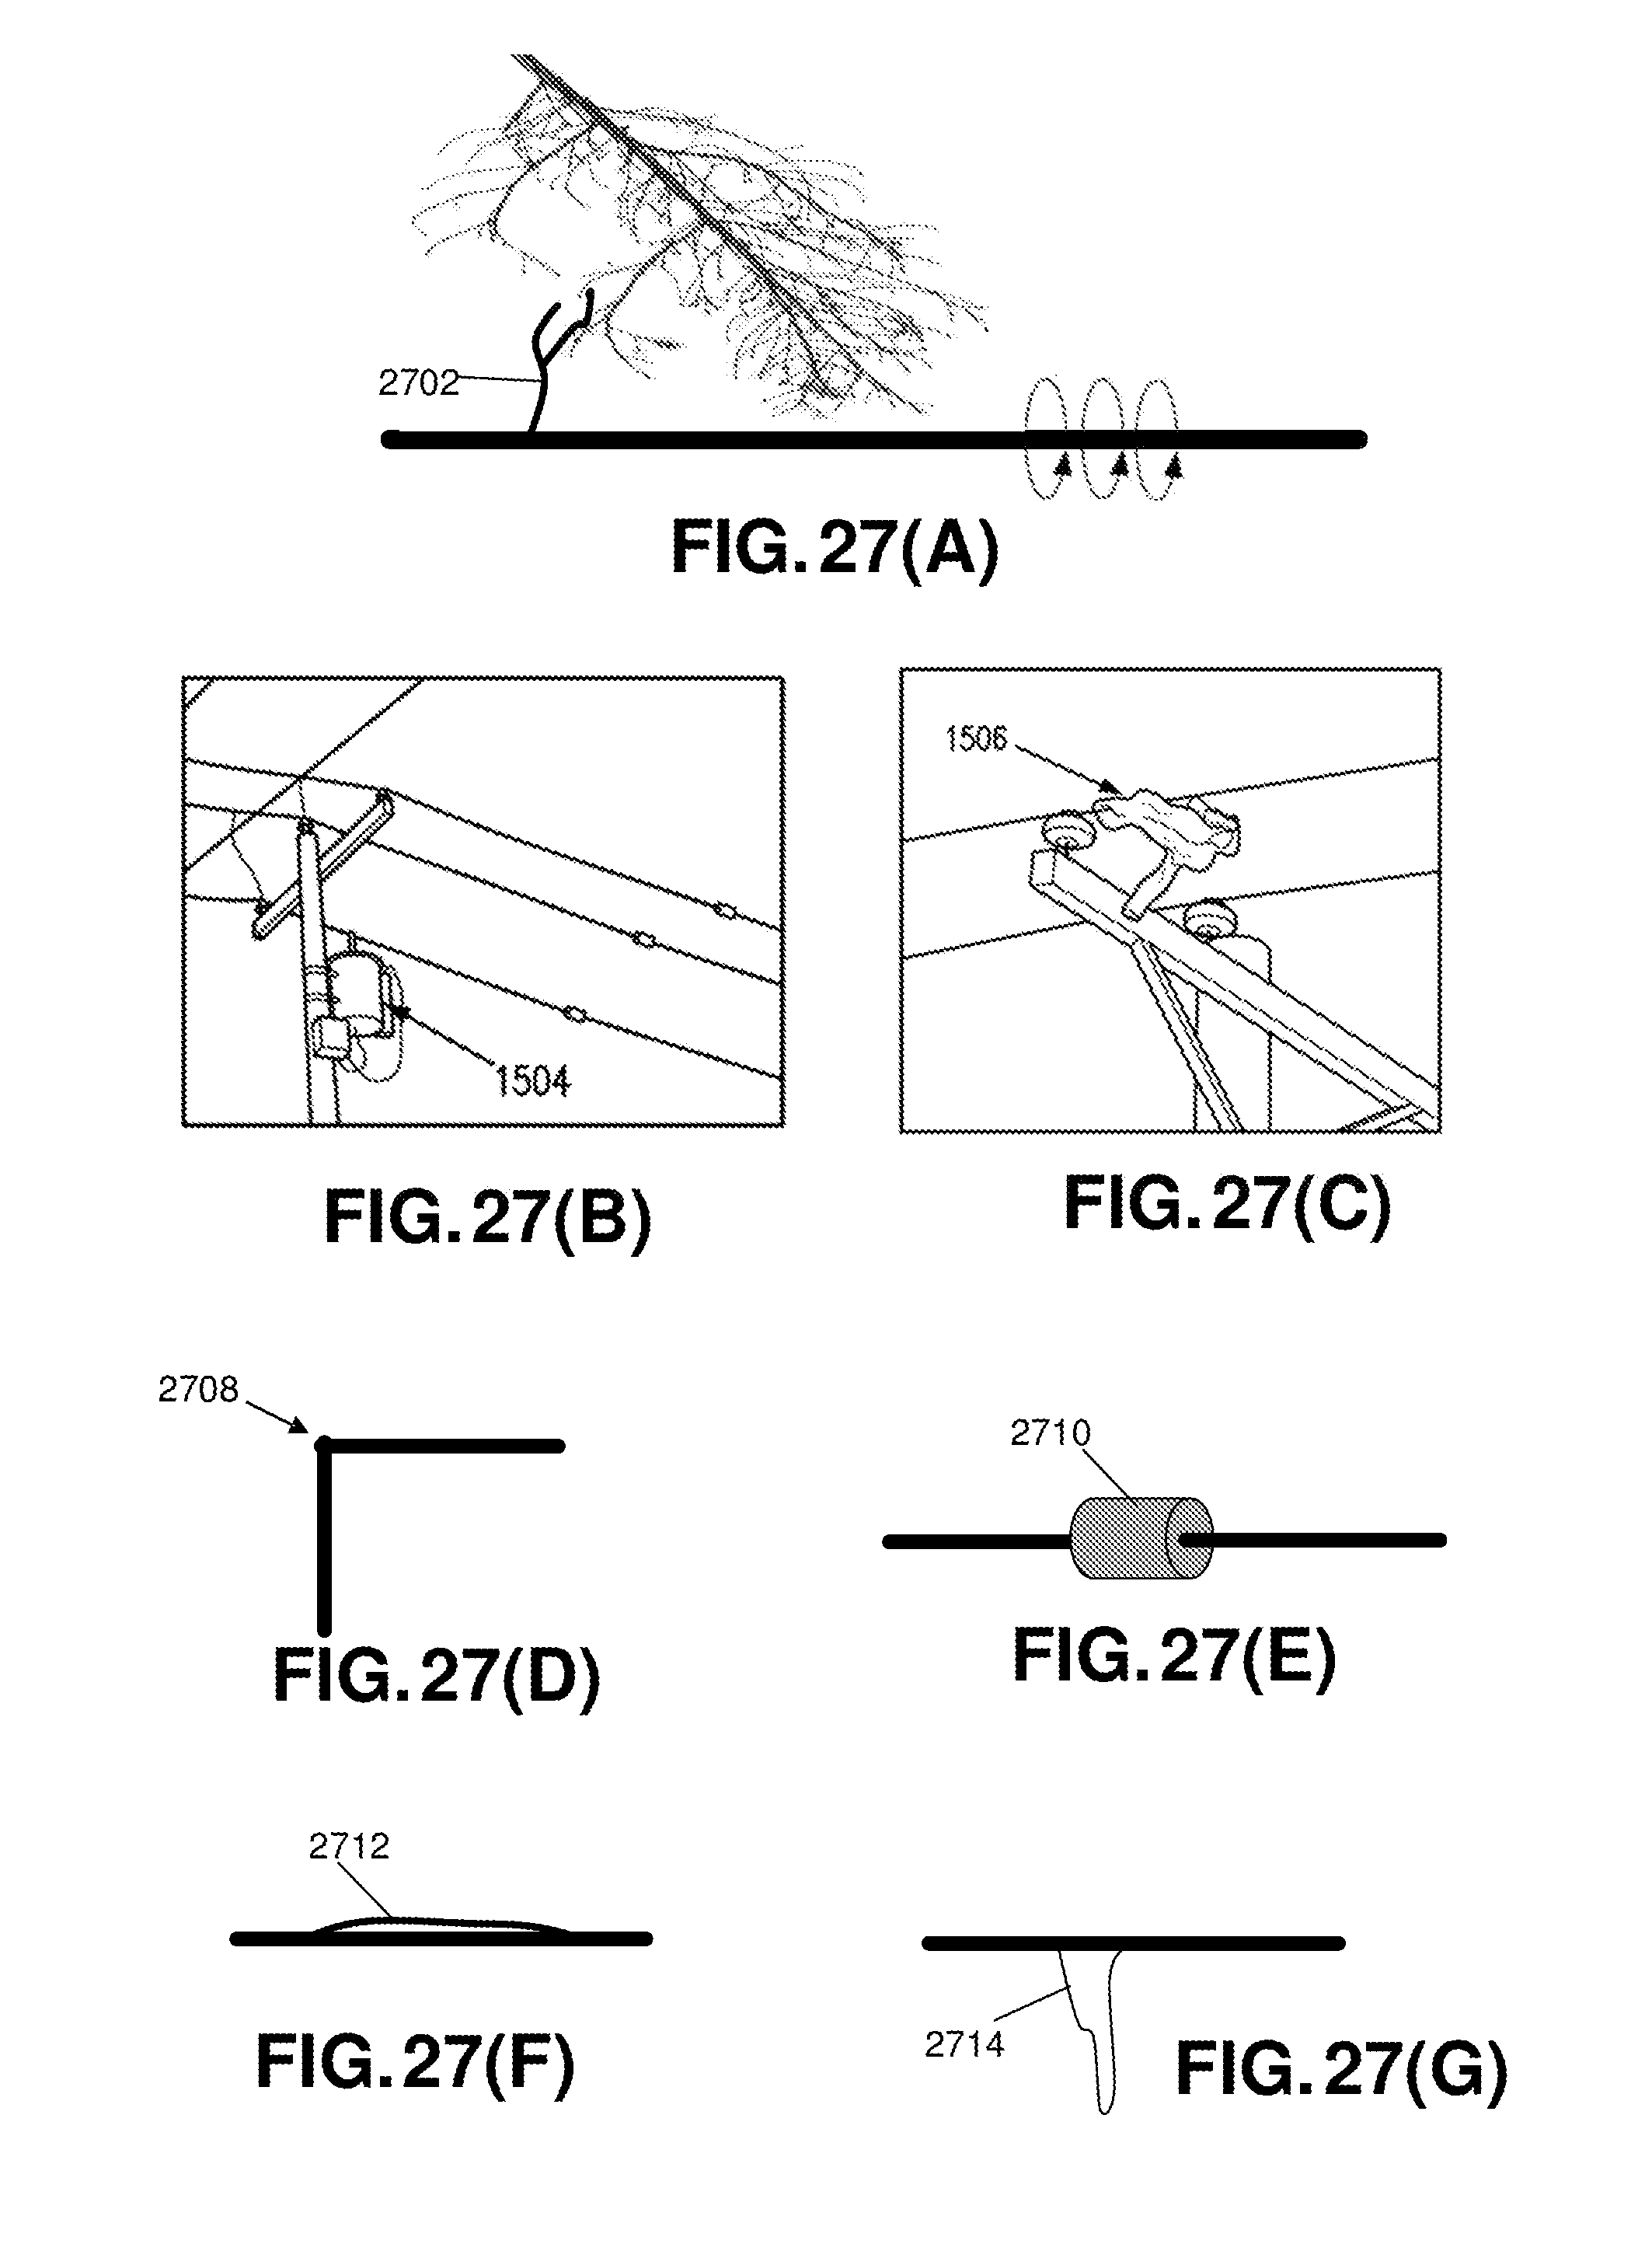 Us20160182161a1 transmission device with impairment pensation and methods for use therewith patents